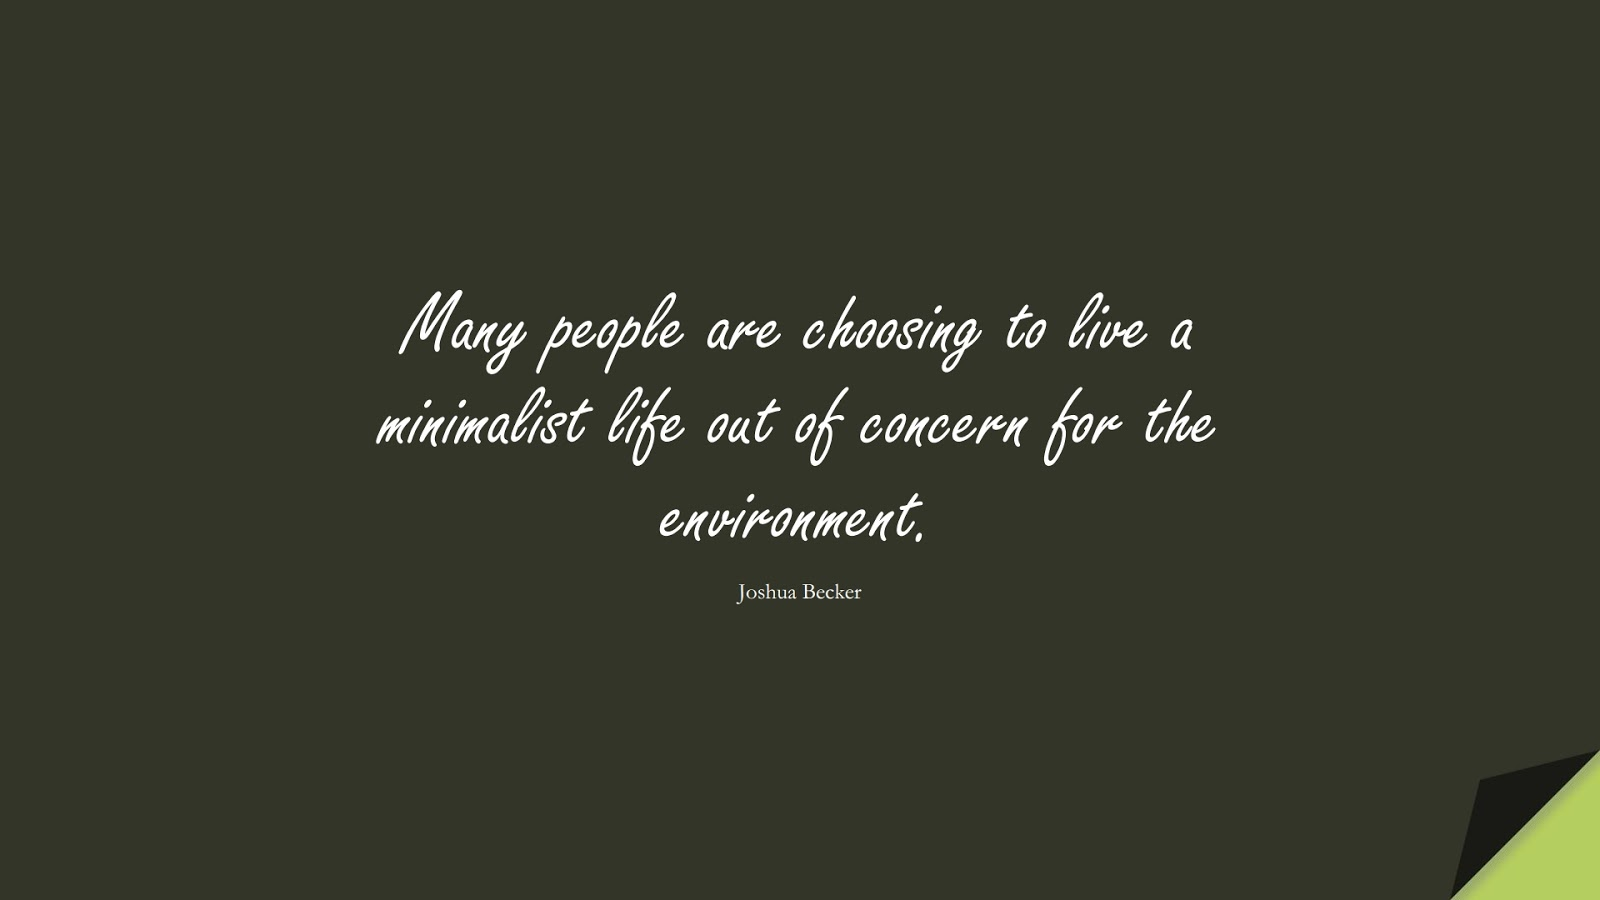 Many people are choosing to live a minimalist life out of concern for the environment. (Joshua Becker);  #HumanityQuotes